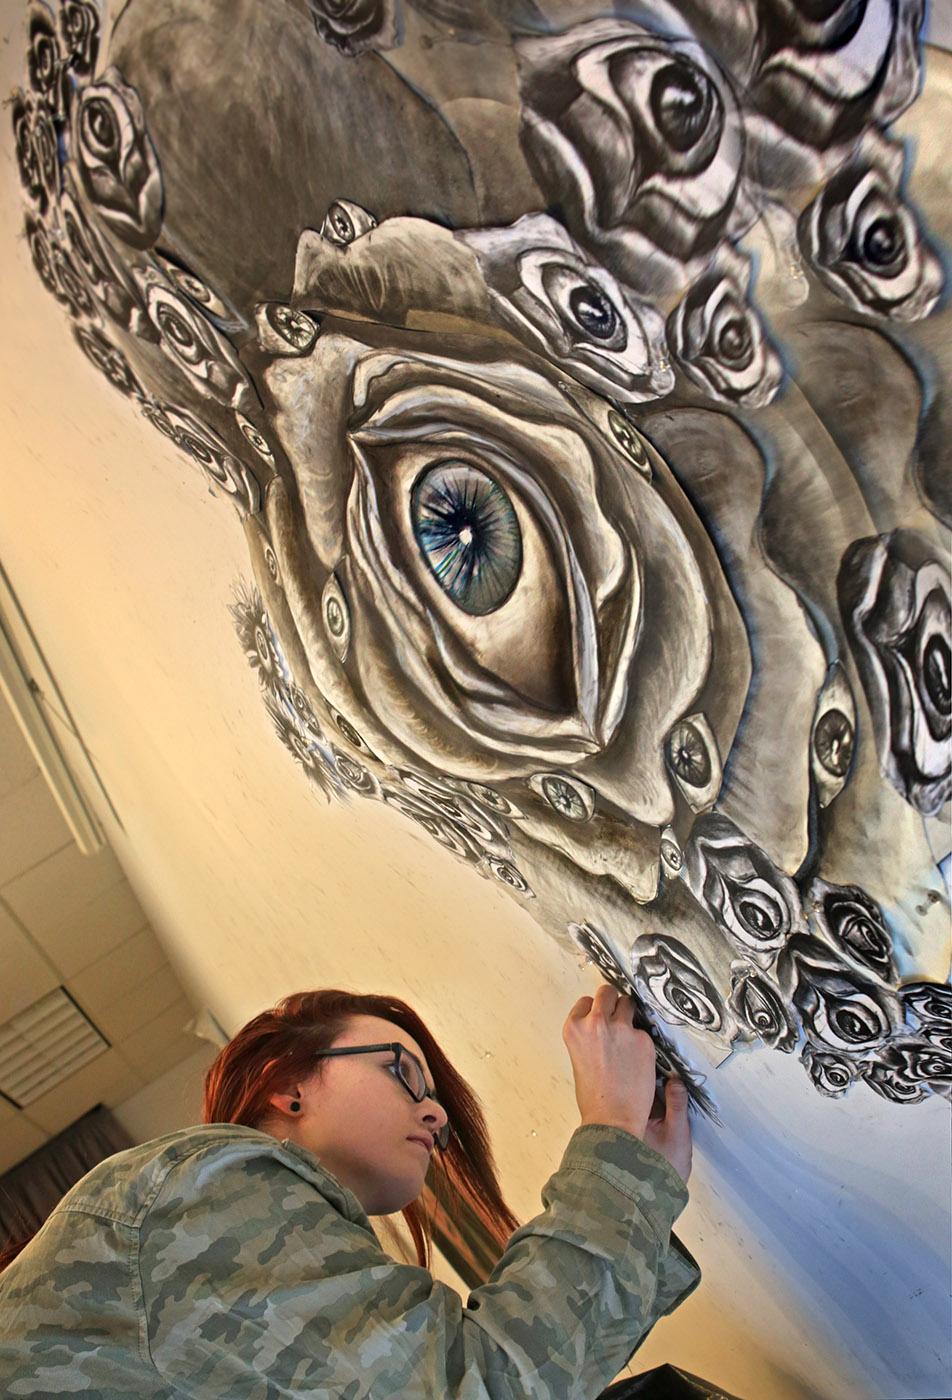 art design degrees umass lowell the art major is designed to develop a rigorous art practice students gain a deep knowledge of the technical and conceptual abilities needed to succeed in